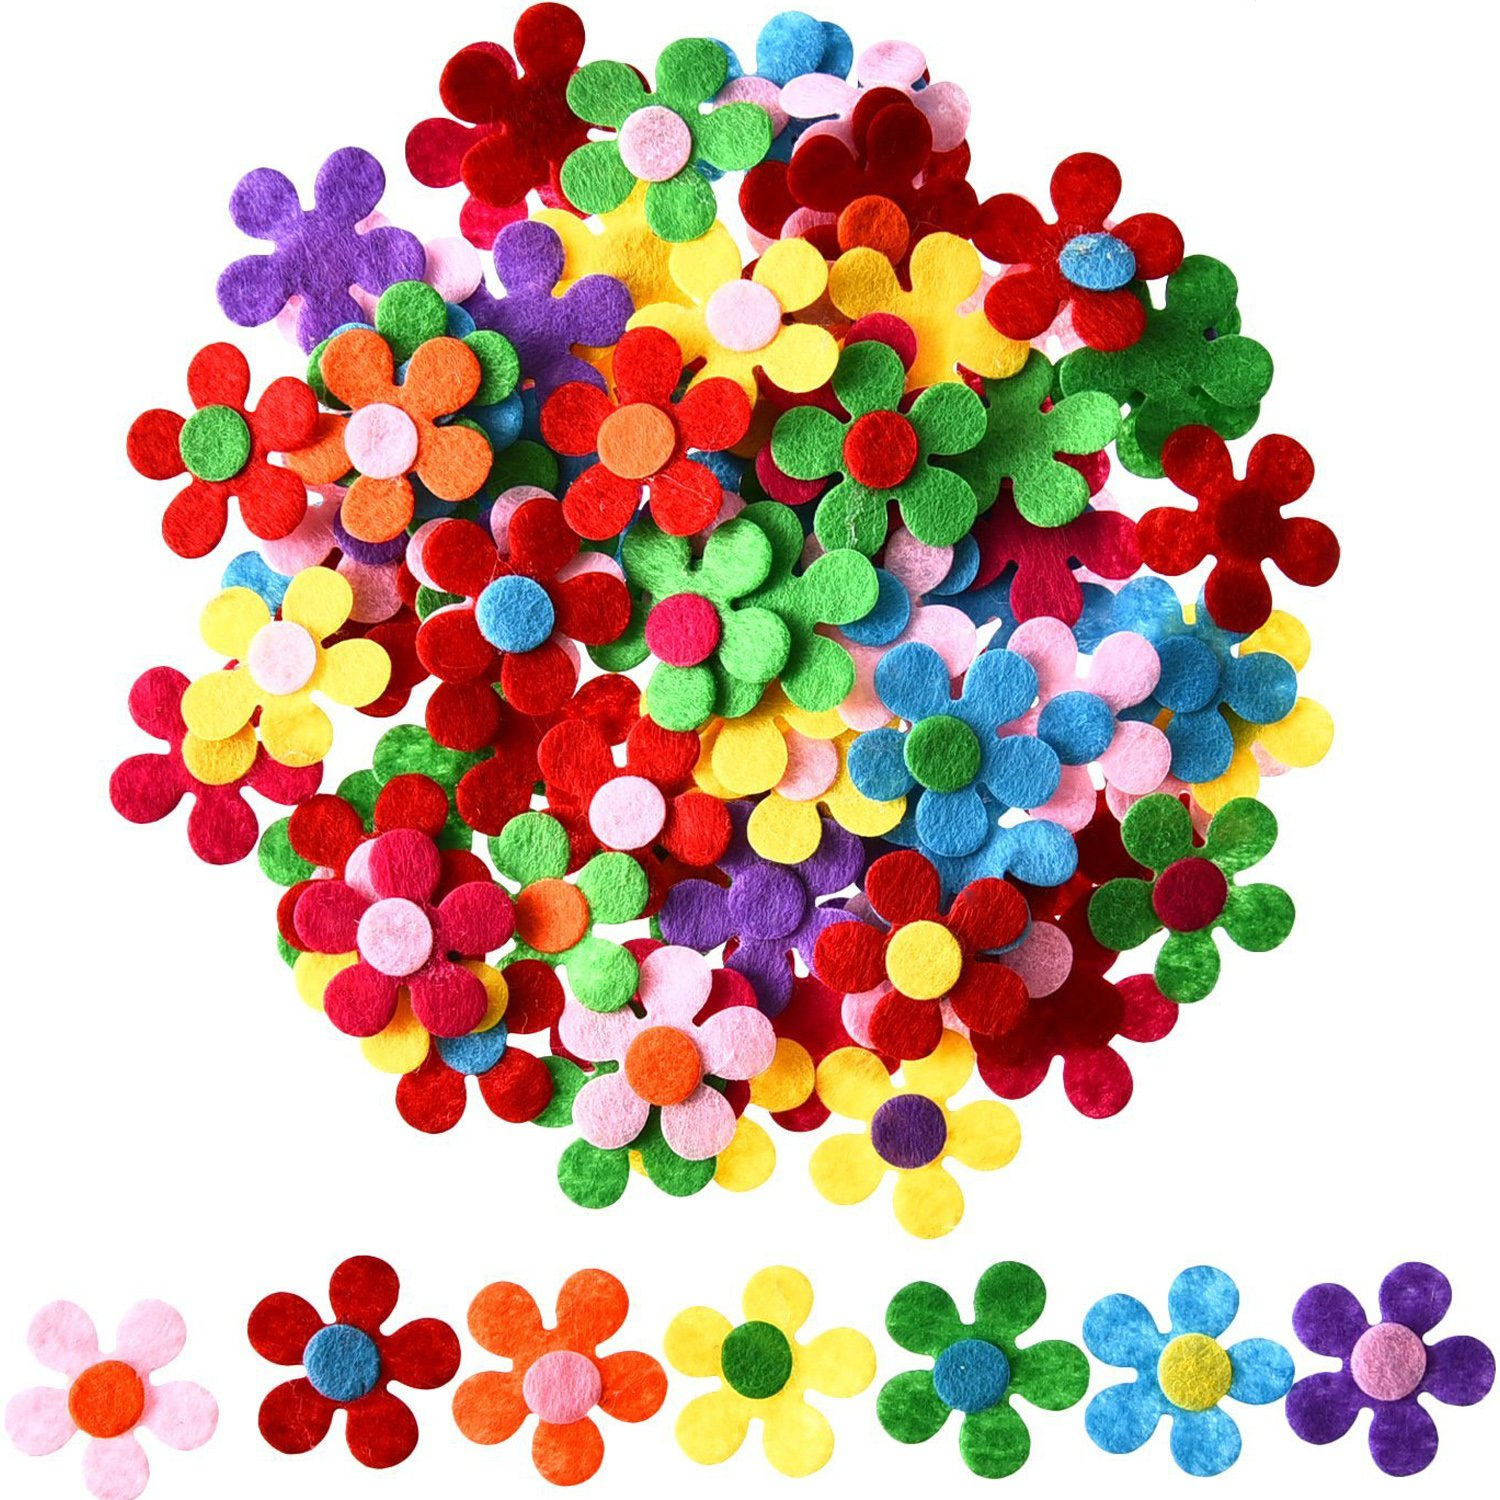 100 Pieces Felt Flowers Fabric Flower Embellishments for DIY Crafts, Assorted Colors Sumind 4336935026